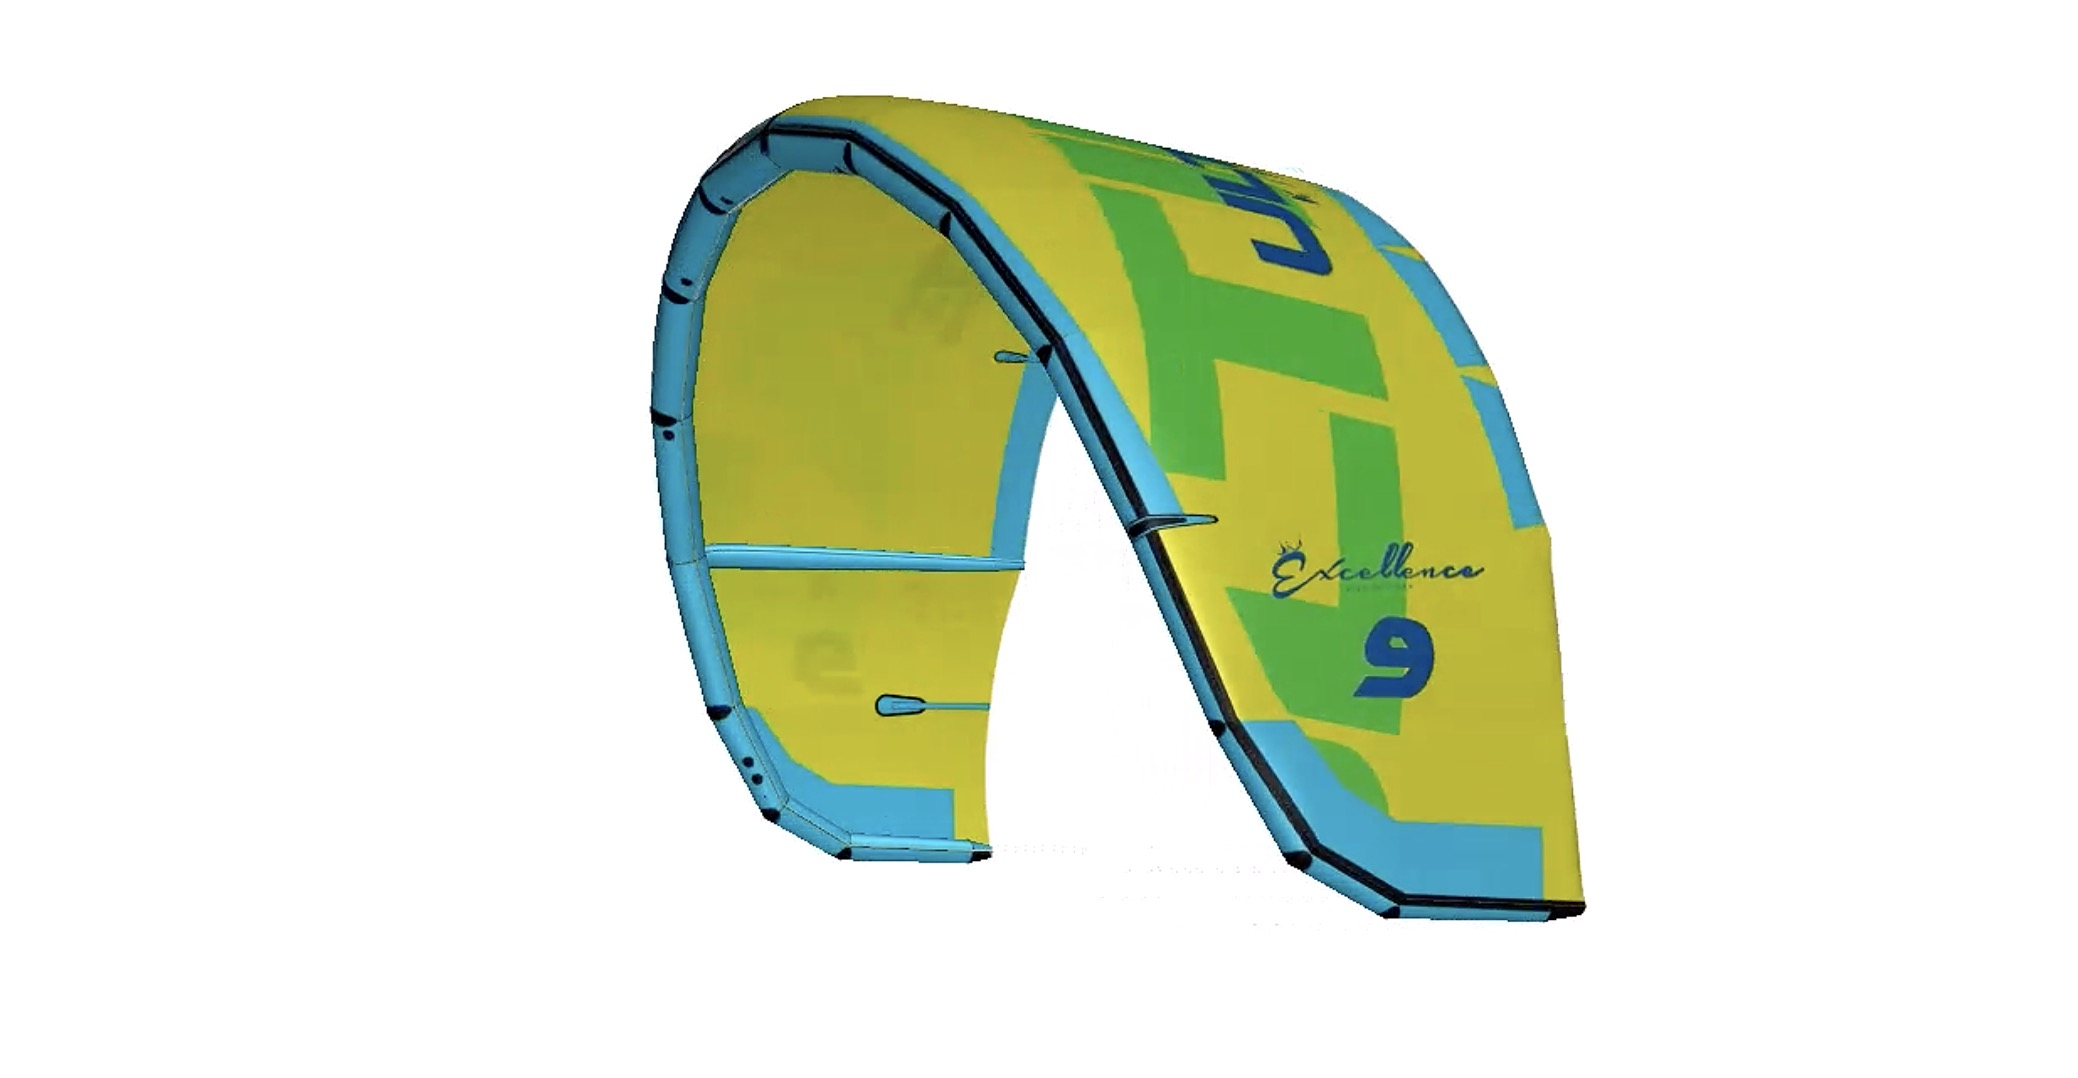 https://www.ultimate-kiteboarding.com/wp-content/uploads/2019/01/excellence-yellow-02-1.jpg